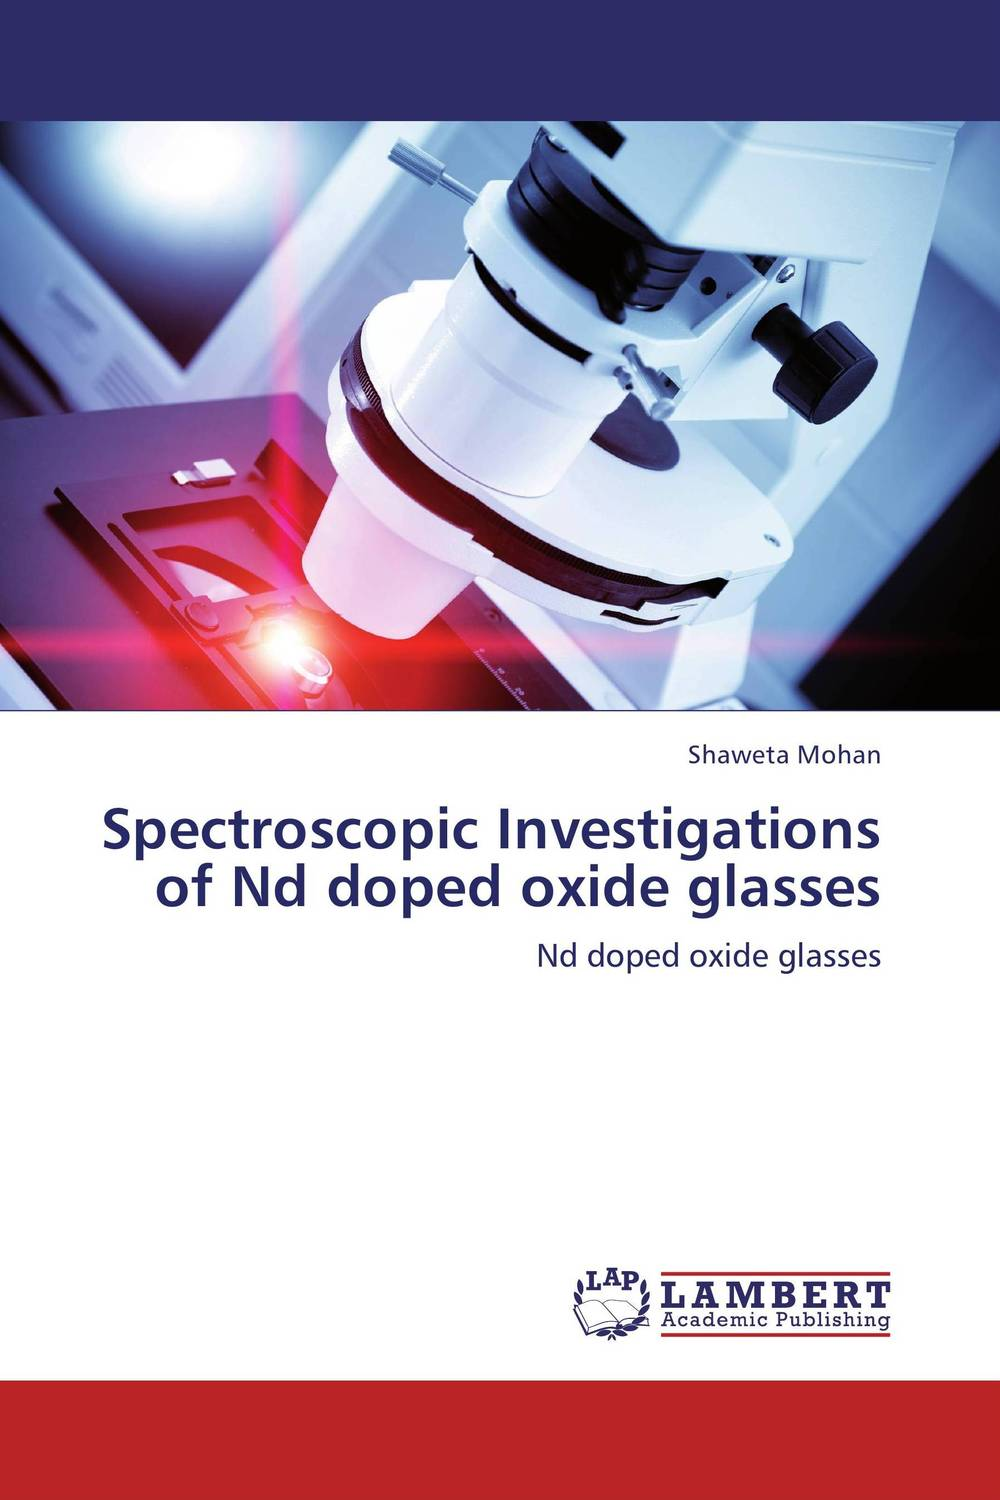 Spectroscopic Investigations of Nd doped oxide glasses carbohydrate doped mgb2 superconductor for magnet application